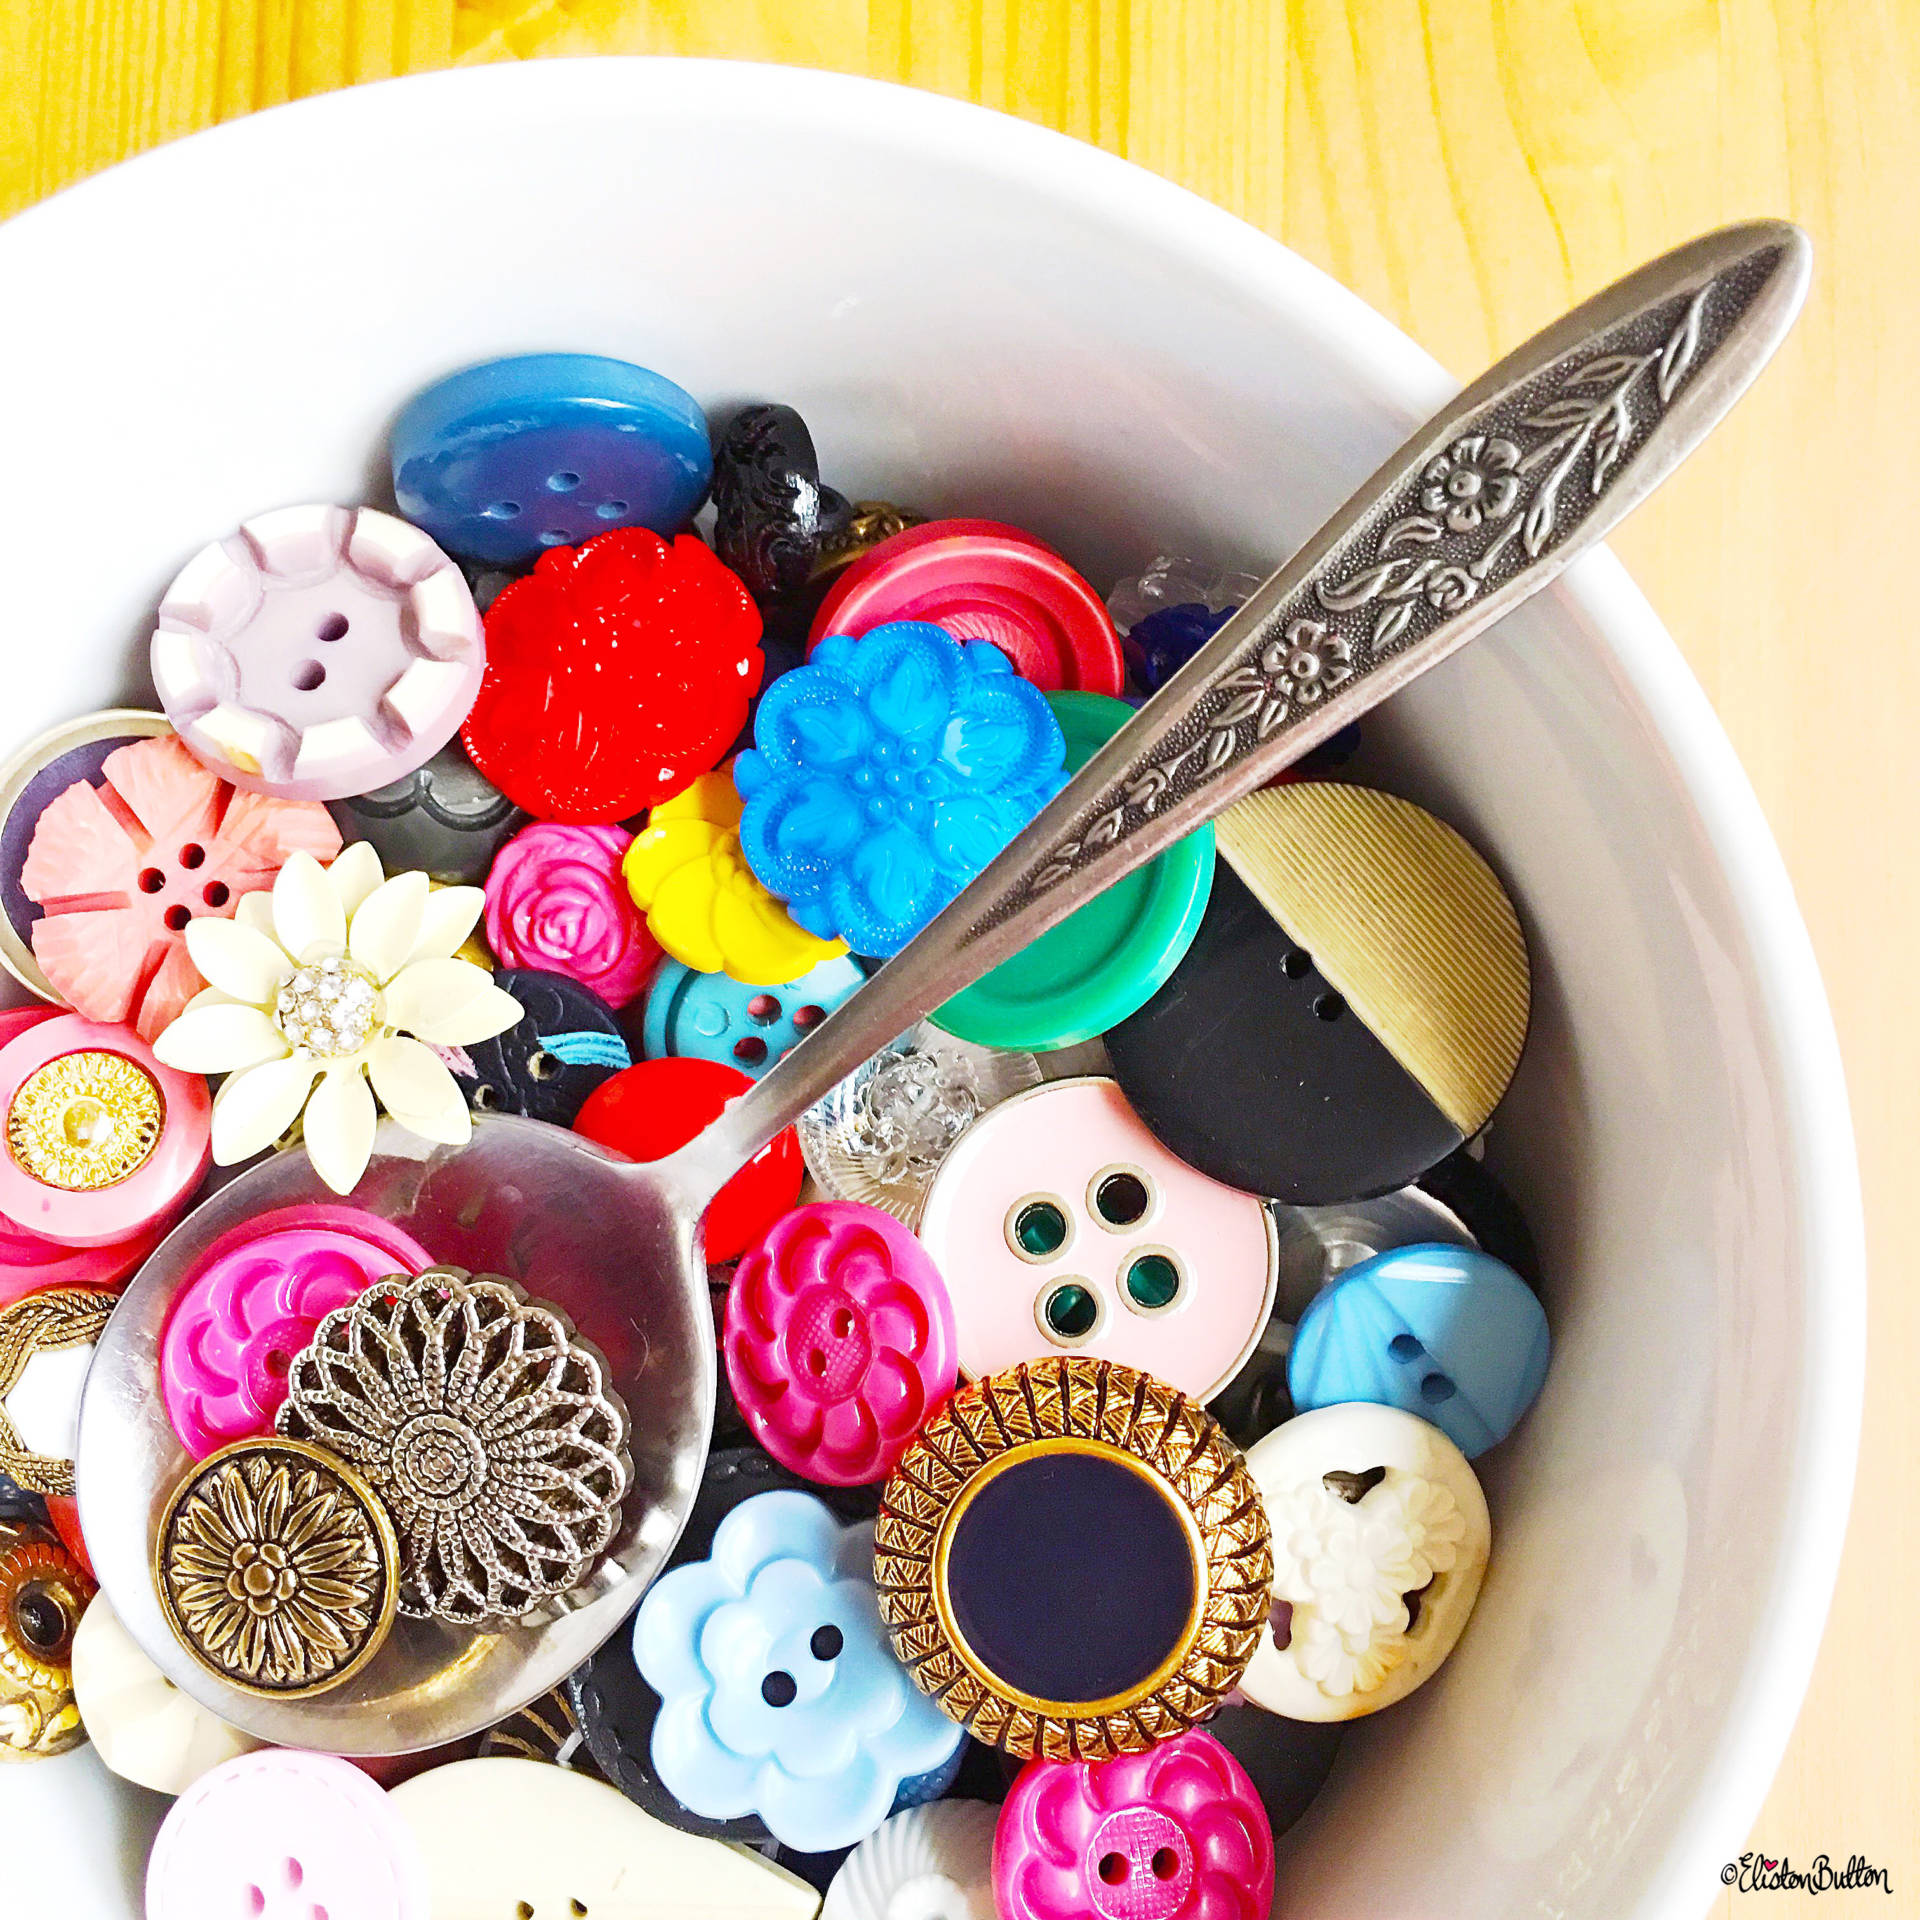 Day 28 - Spoon - A Spoon Full of Buttons! - Photo-a-Day – October 2016 at www.elistonbutton.com - Eliston Button - That Crafty Kid – Art, Design, Craft & Adventure.